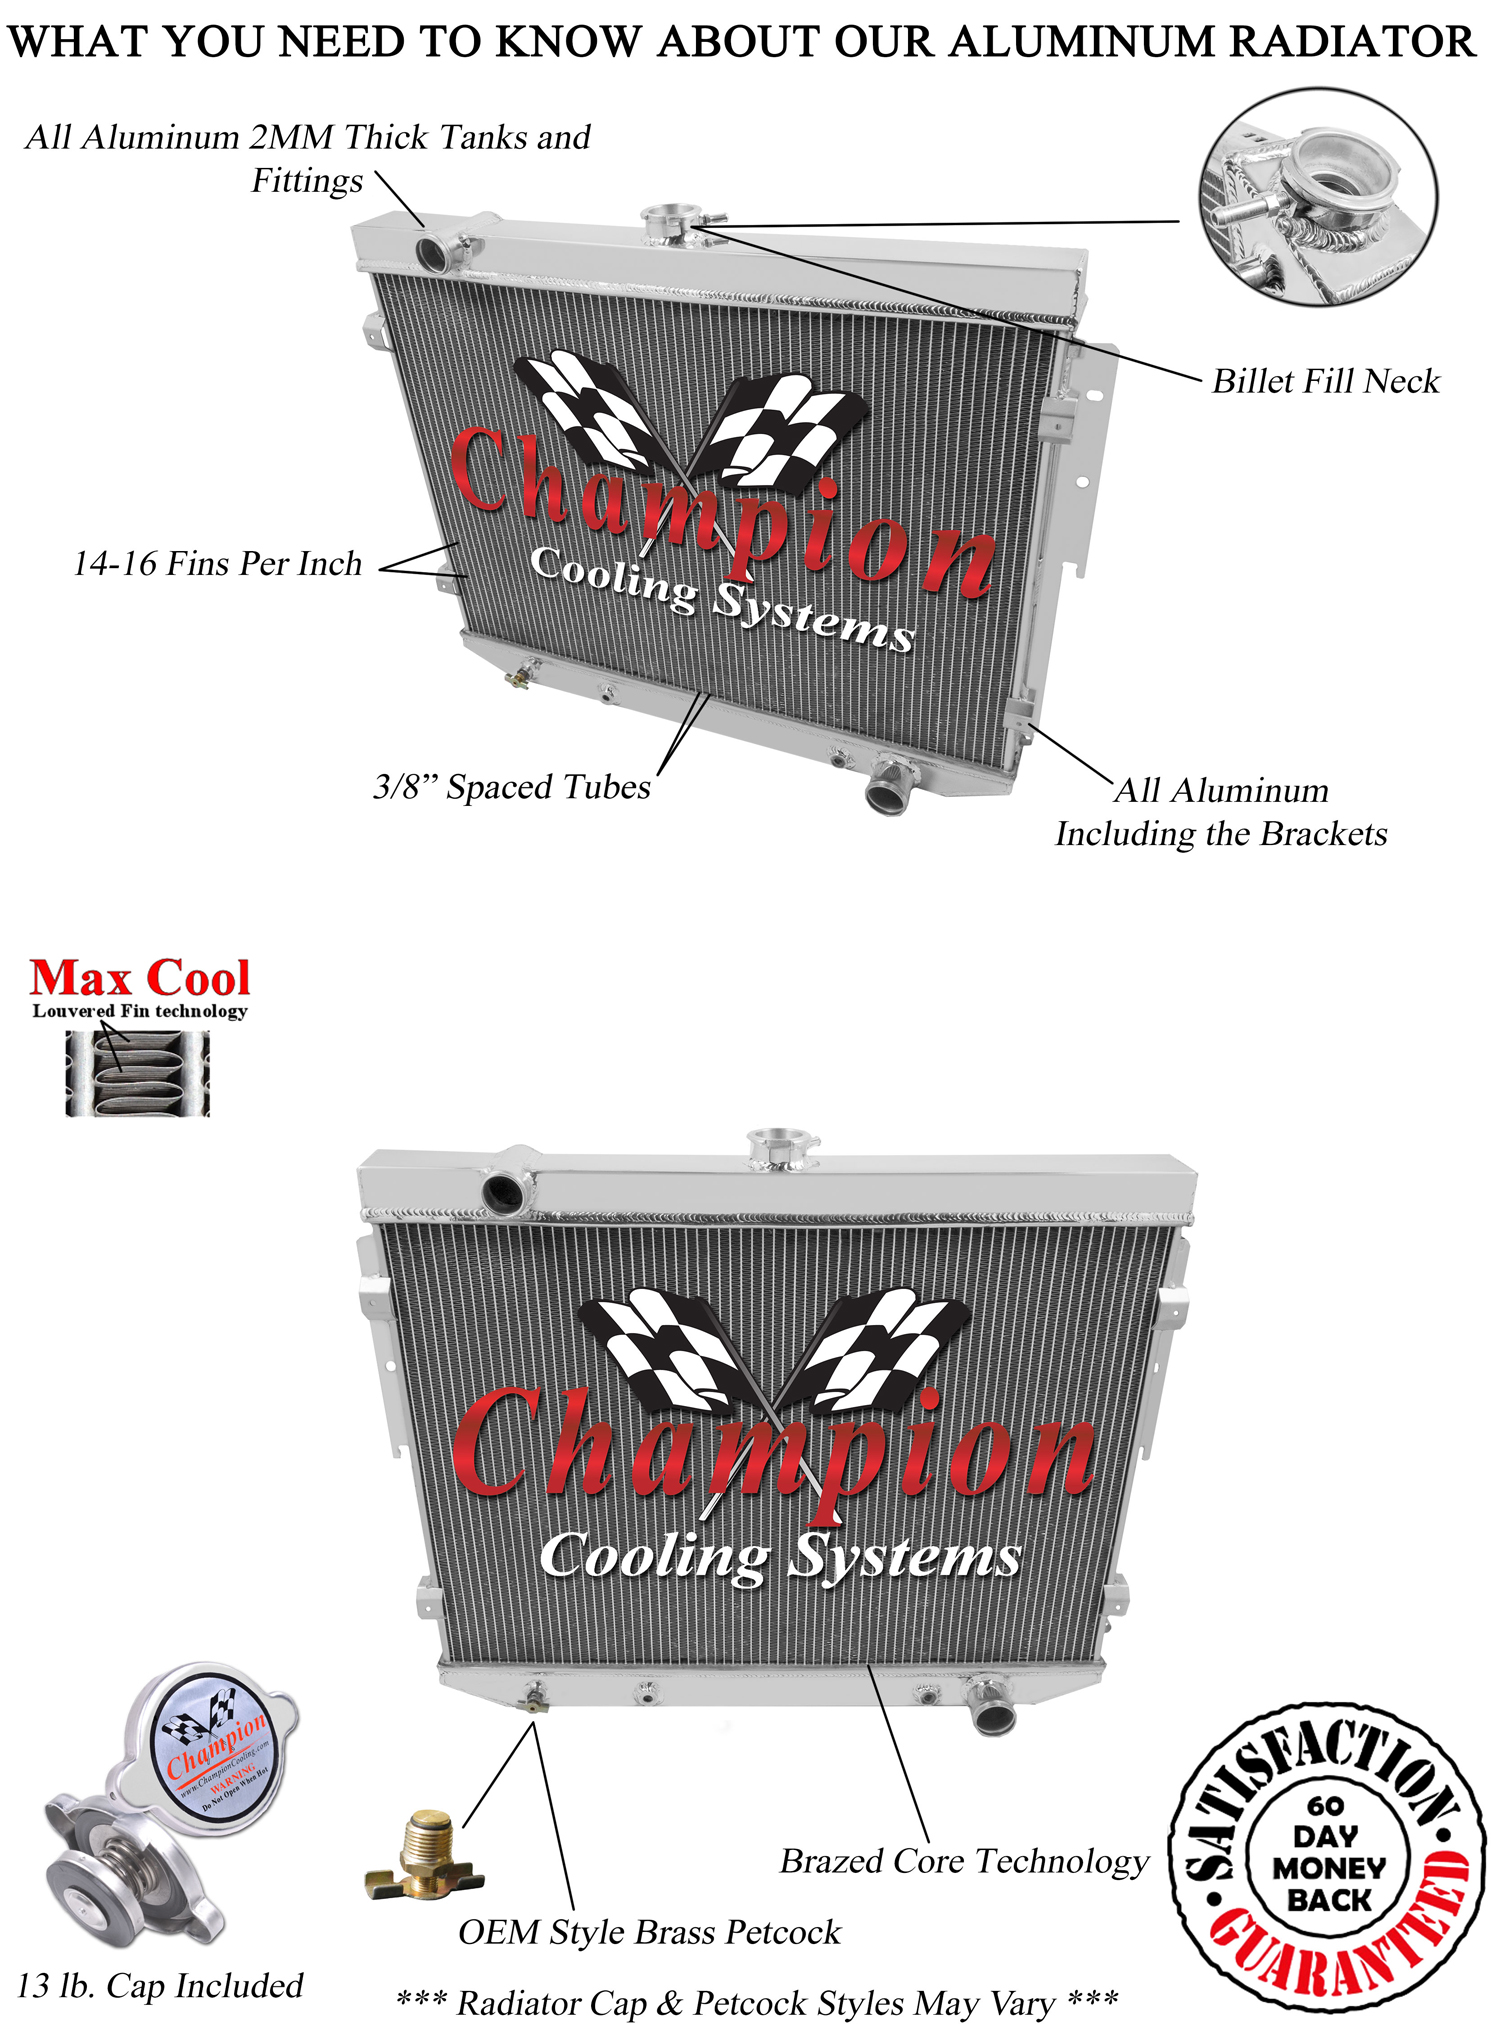 https://www.championcooling.com/photos/Photos%20White/Without%20Fans/504/504_white_Diagram_Champion.jpg